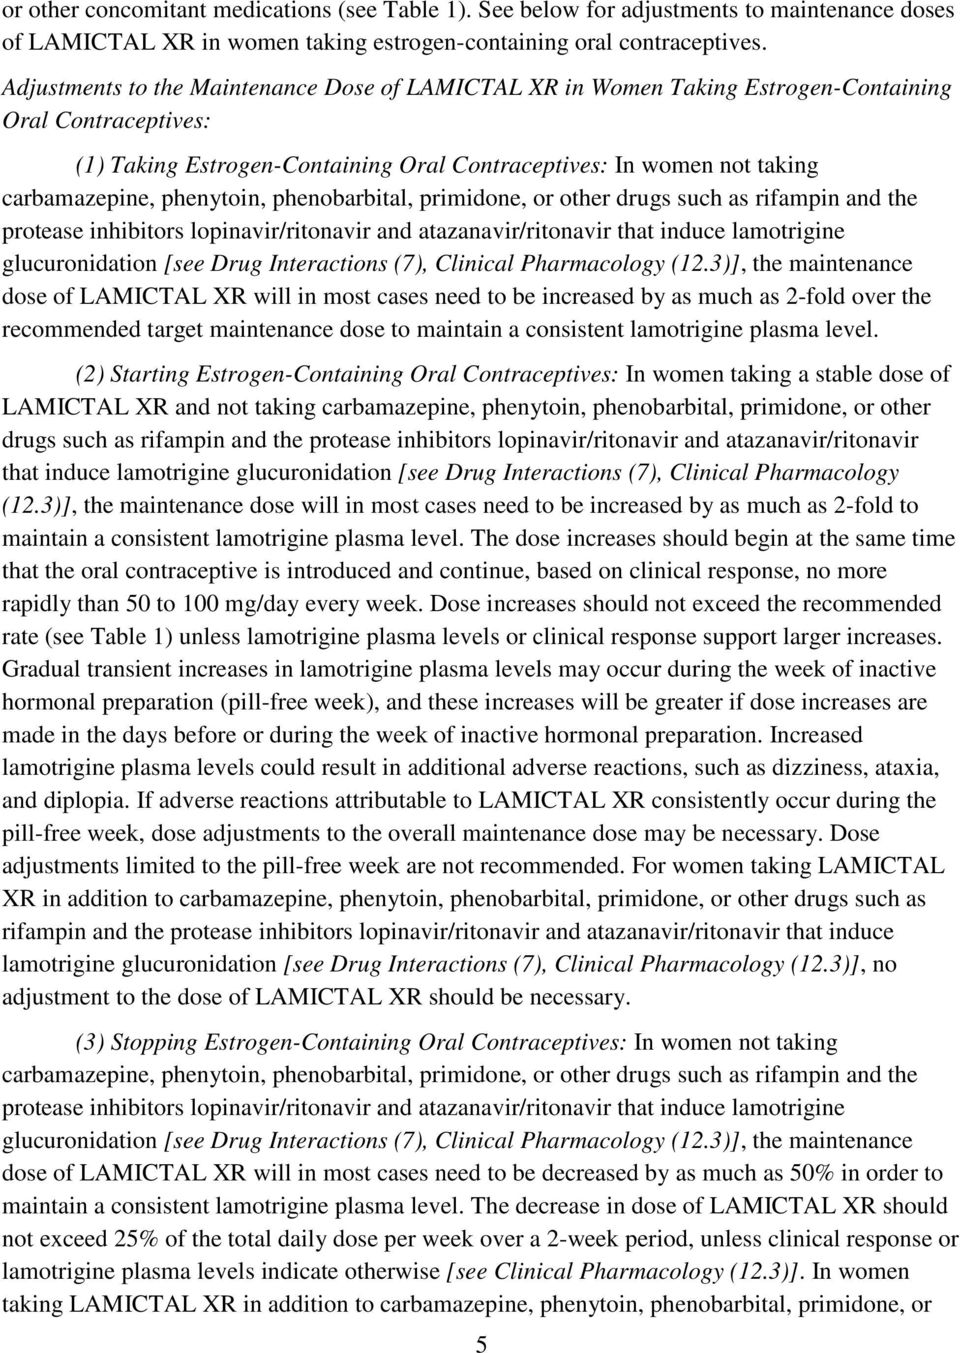 phenytoin, phenobarbital, primidone, or other drugs such as rifampin and the protease inhibitors lopinavir/ritonavir and atazanavir/ritonavir that induce lamotrigine glucuronidation [see Drug